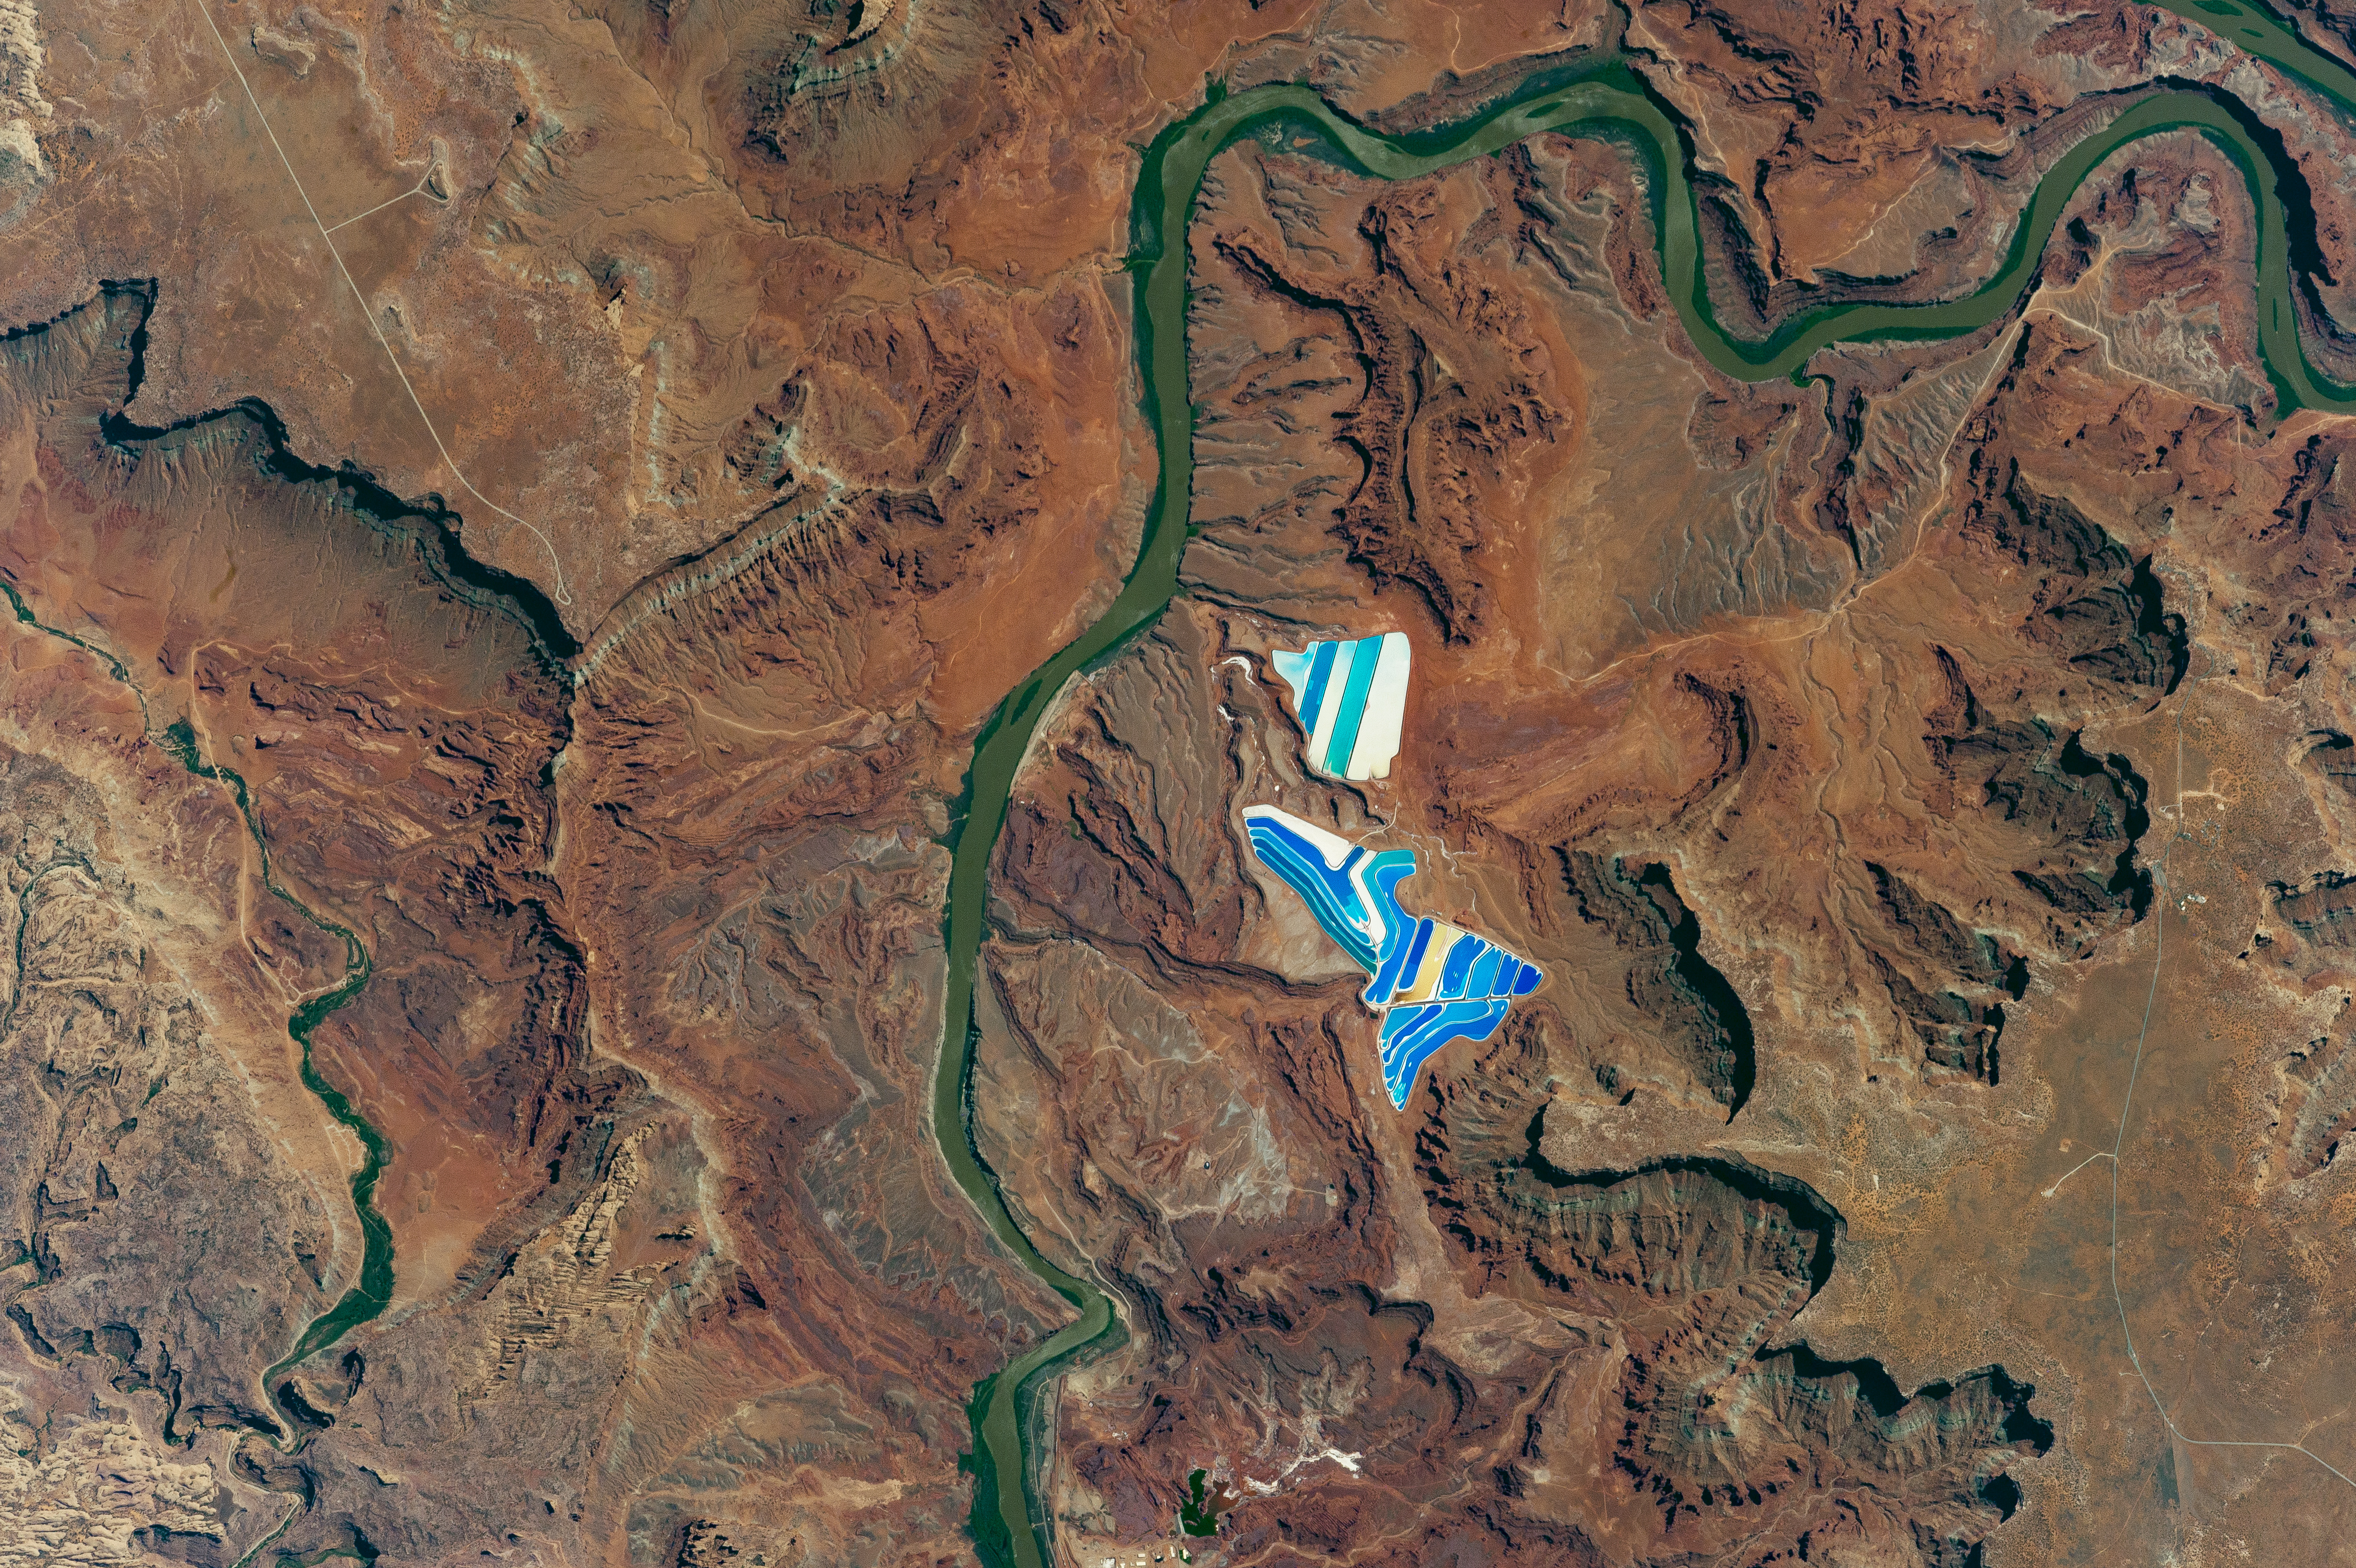 iss052e008757_lrg Cool Nasa News - Solar Evaporation Ponds Near Moab, Utah - #cool #Space #News